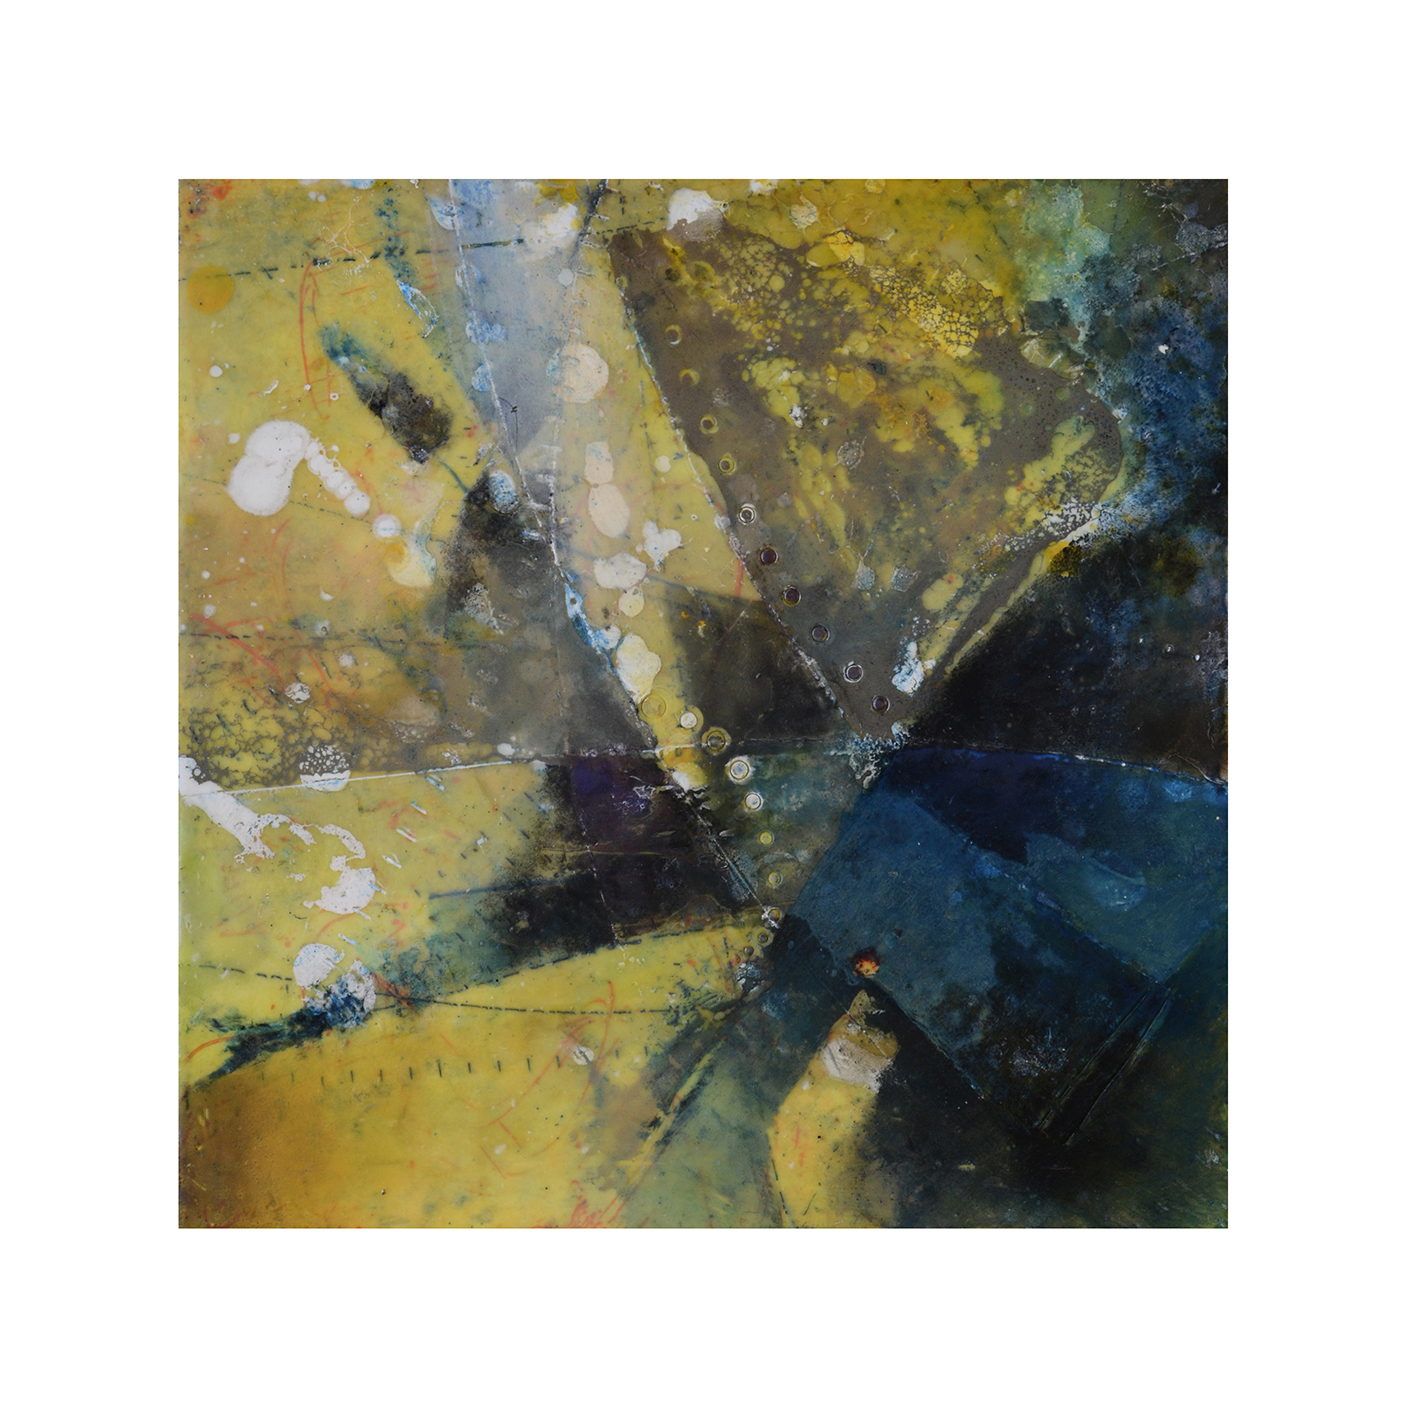 Forces of Nature 3   12 x 12  Encaustic on Panel  $300